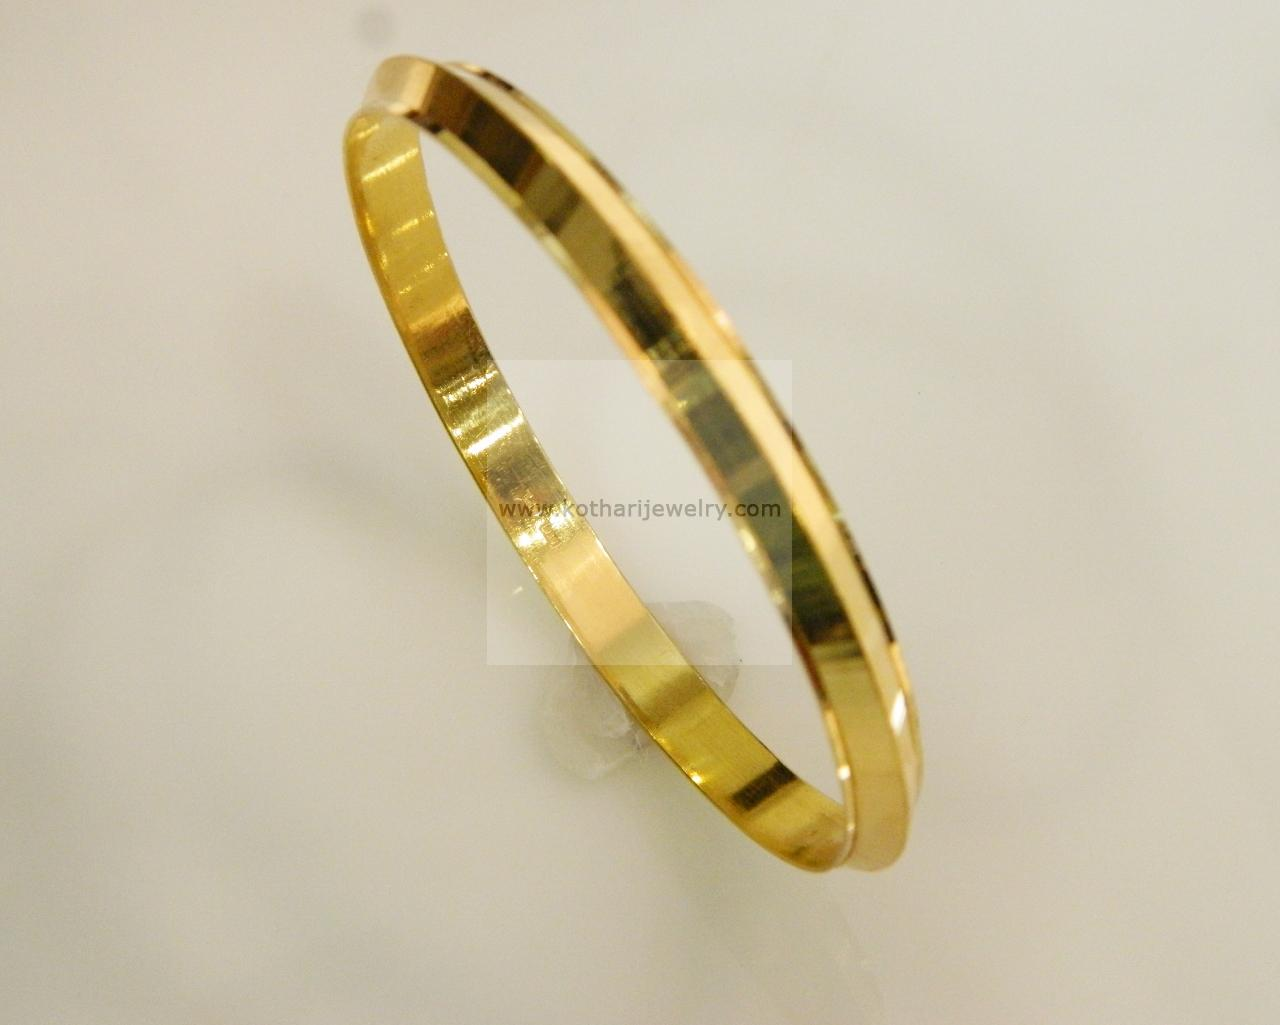 bangle group plain expandable filled aliexpress alibaba jewelry accessories in bracelet item from smooth yellow womens com bangles gold on